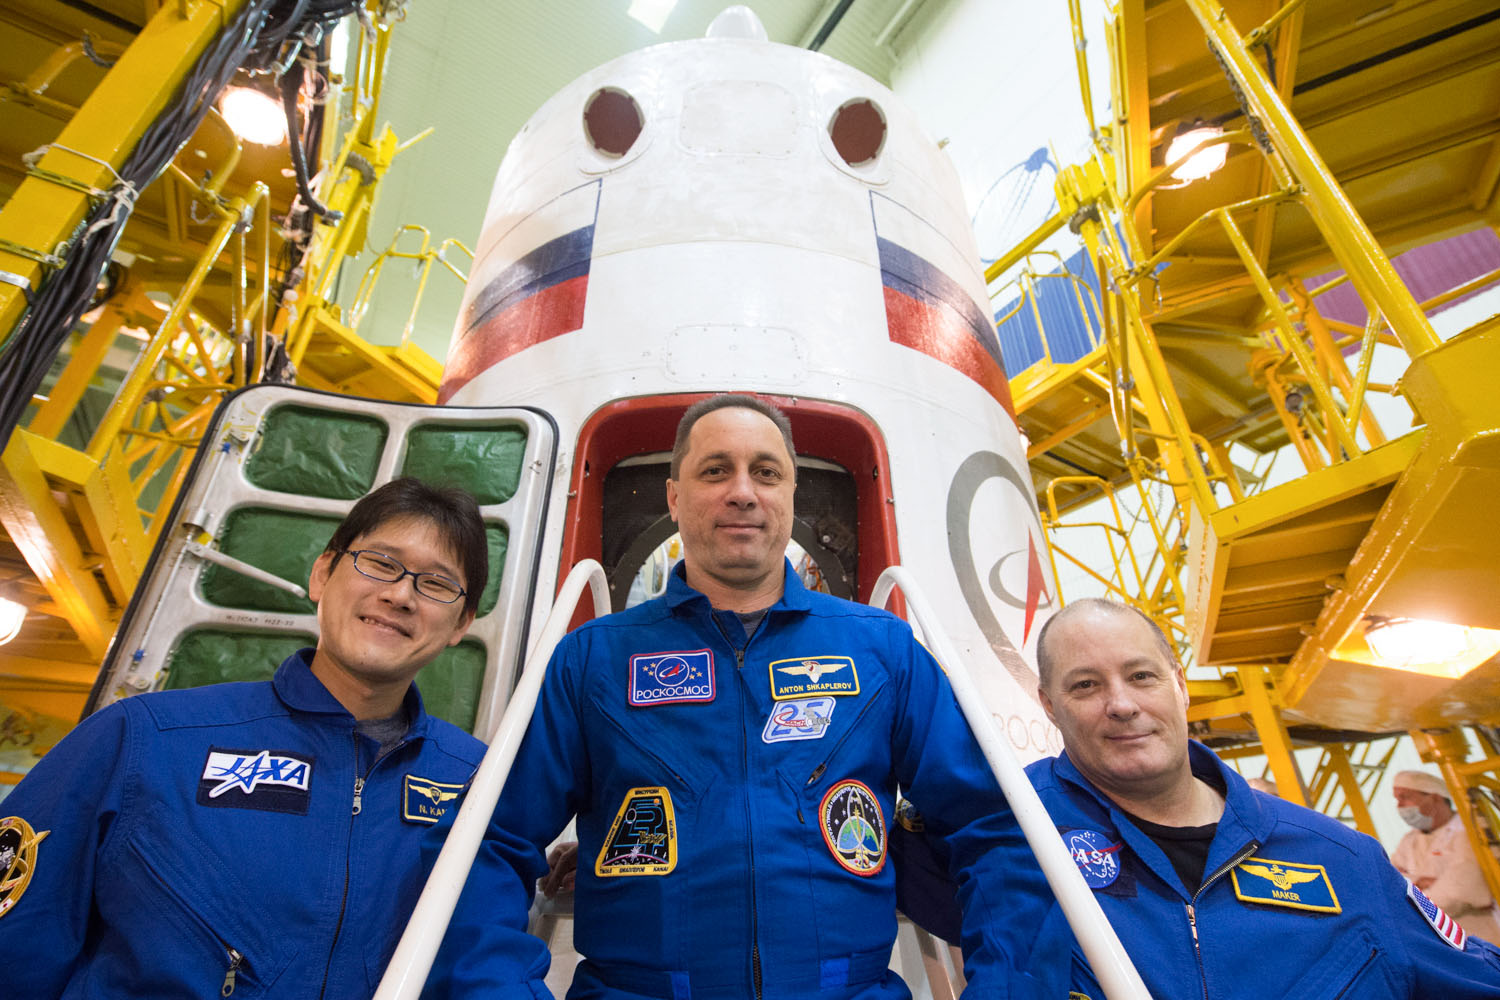 jsc2017e138117 - At the Integration Facility at the Baikonur Cosmodrome in Kazakhstan, the Expedition 54-55 prime crewmembers pose for pictures Dec. 13 in front of the Soyuz MS-07 spacecraft during pre-launch training. Norishige Kanai of the Japan Aerospace Exploration Agency (JAXA), Anton Shkaplerov of the Russian Federal Space Agency (Roscosmos, center) and Scott Tingle of NASA (right) will launch Dec. 17 on the Soyuz MS-07 vehicle for a five month mission on the International Space Station...Andrey Shelepin/Gagarin Cosmonaut Training Center.